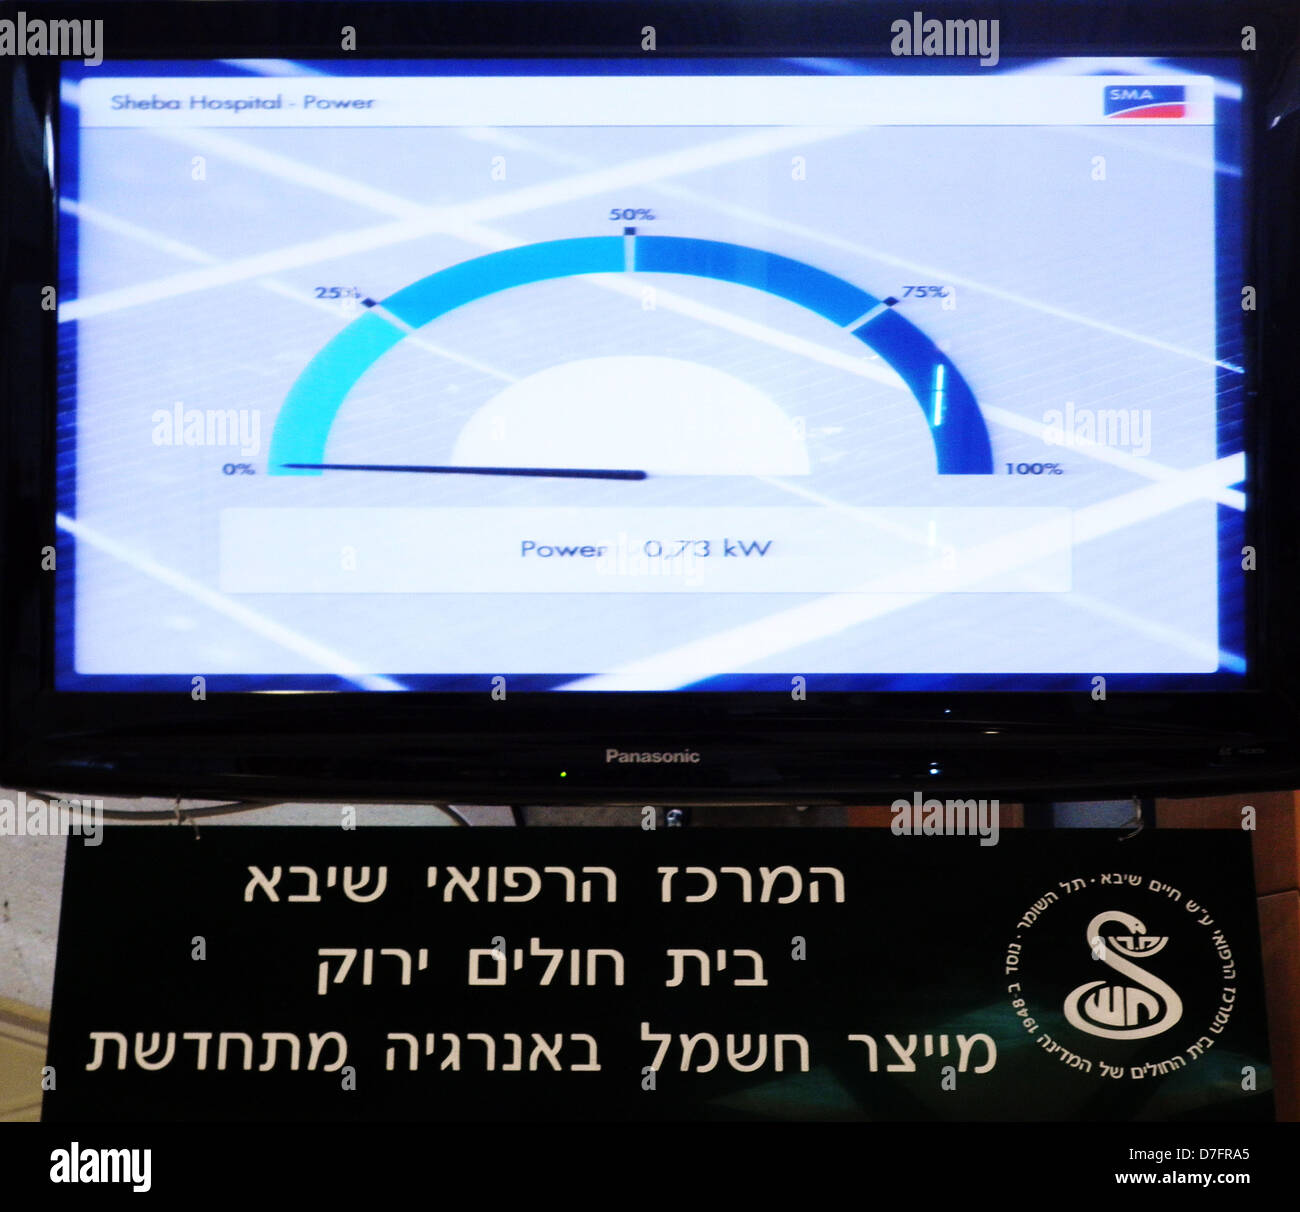 Renewable Energy Monitor Display At  Tel Hashomer, Israel - Stock Image